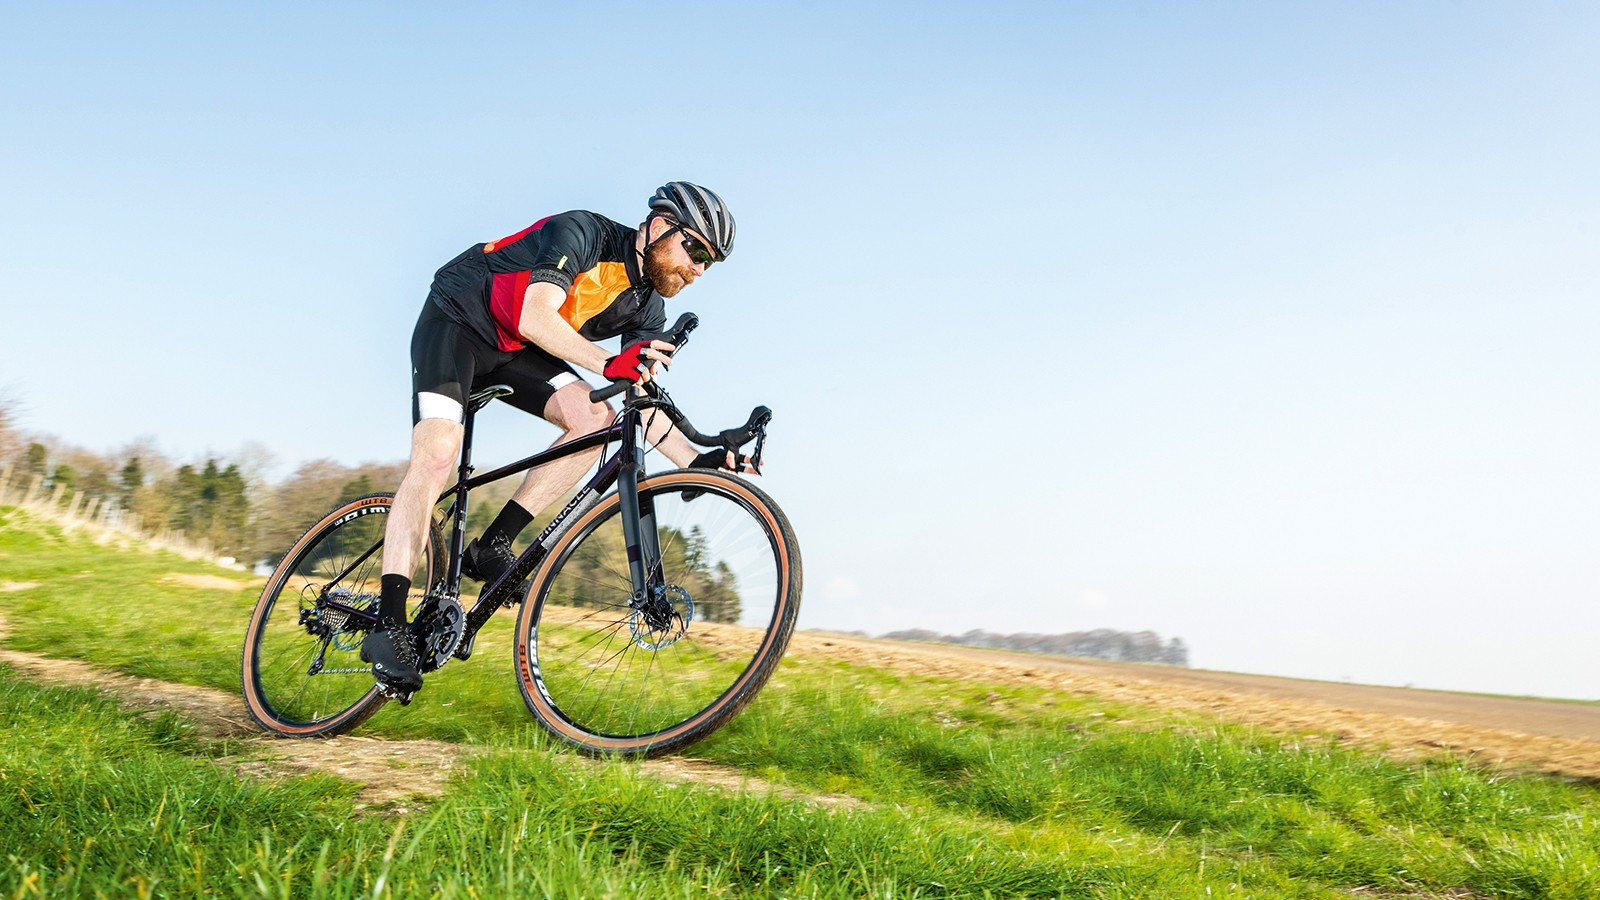 Male cyclist riding road bike in countryside